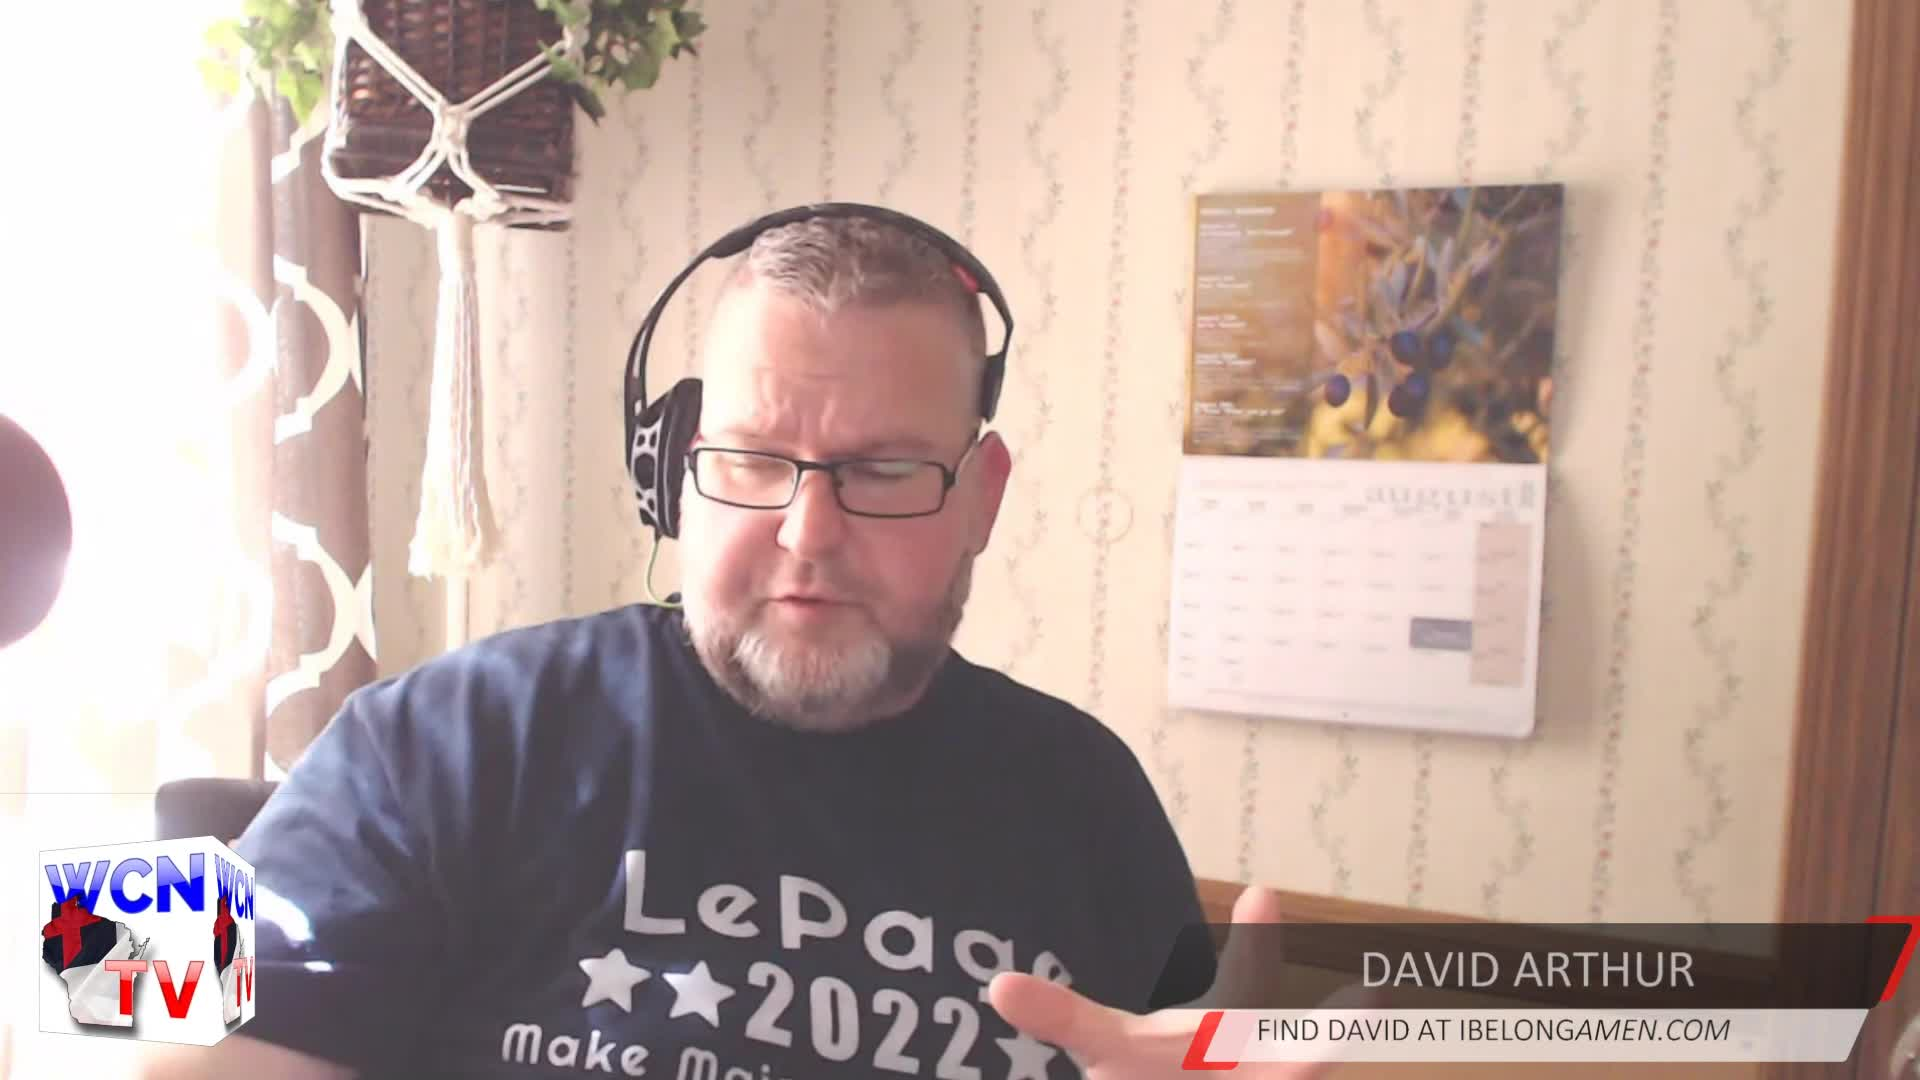 WCN-TV August 5, 2020 with Rob Pue and David Arthur